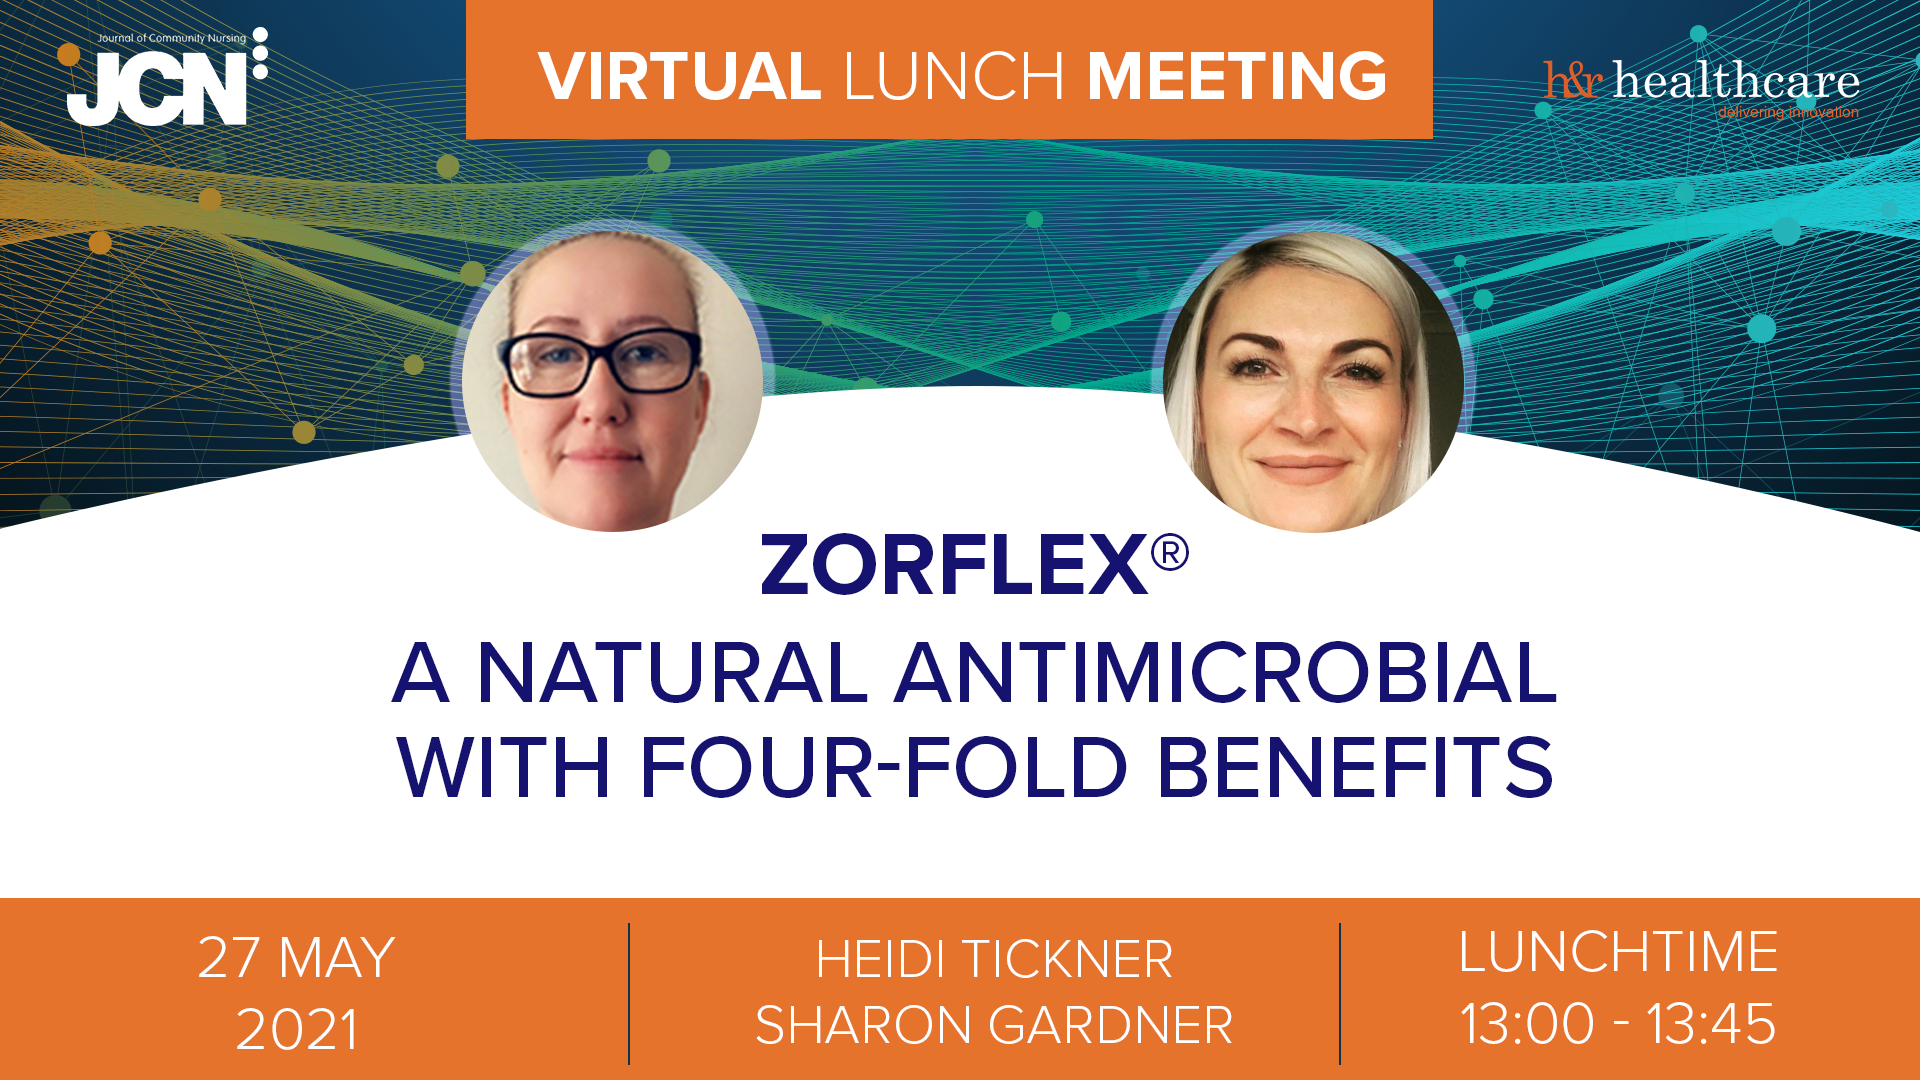 Virtual Lunch Meeting: Zorflex<sup>®</sup> - a natural antimicrobial with four-fold benefits